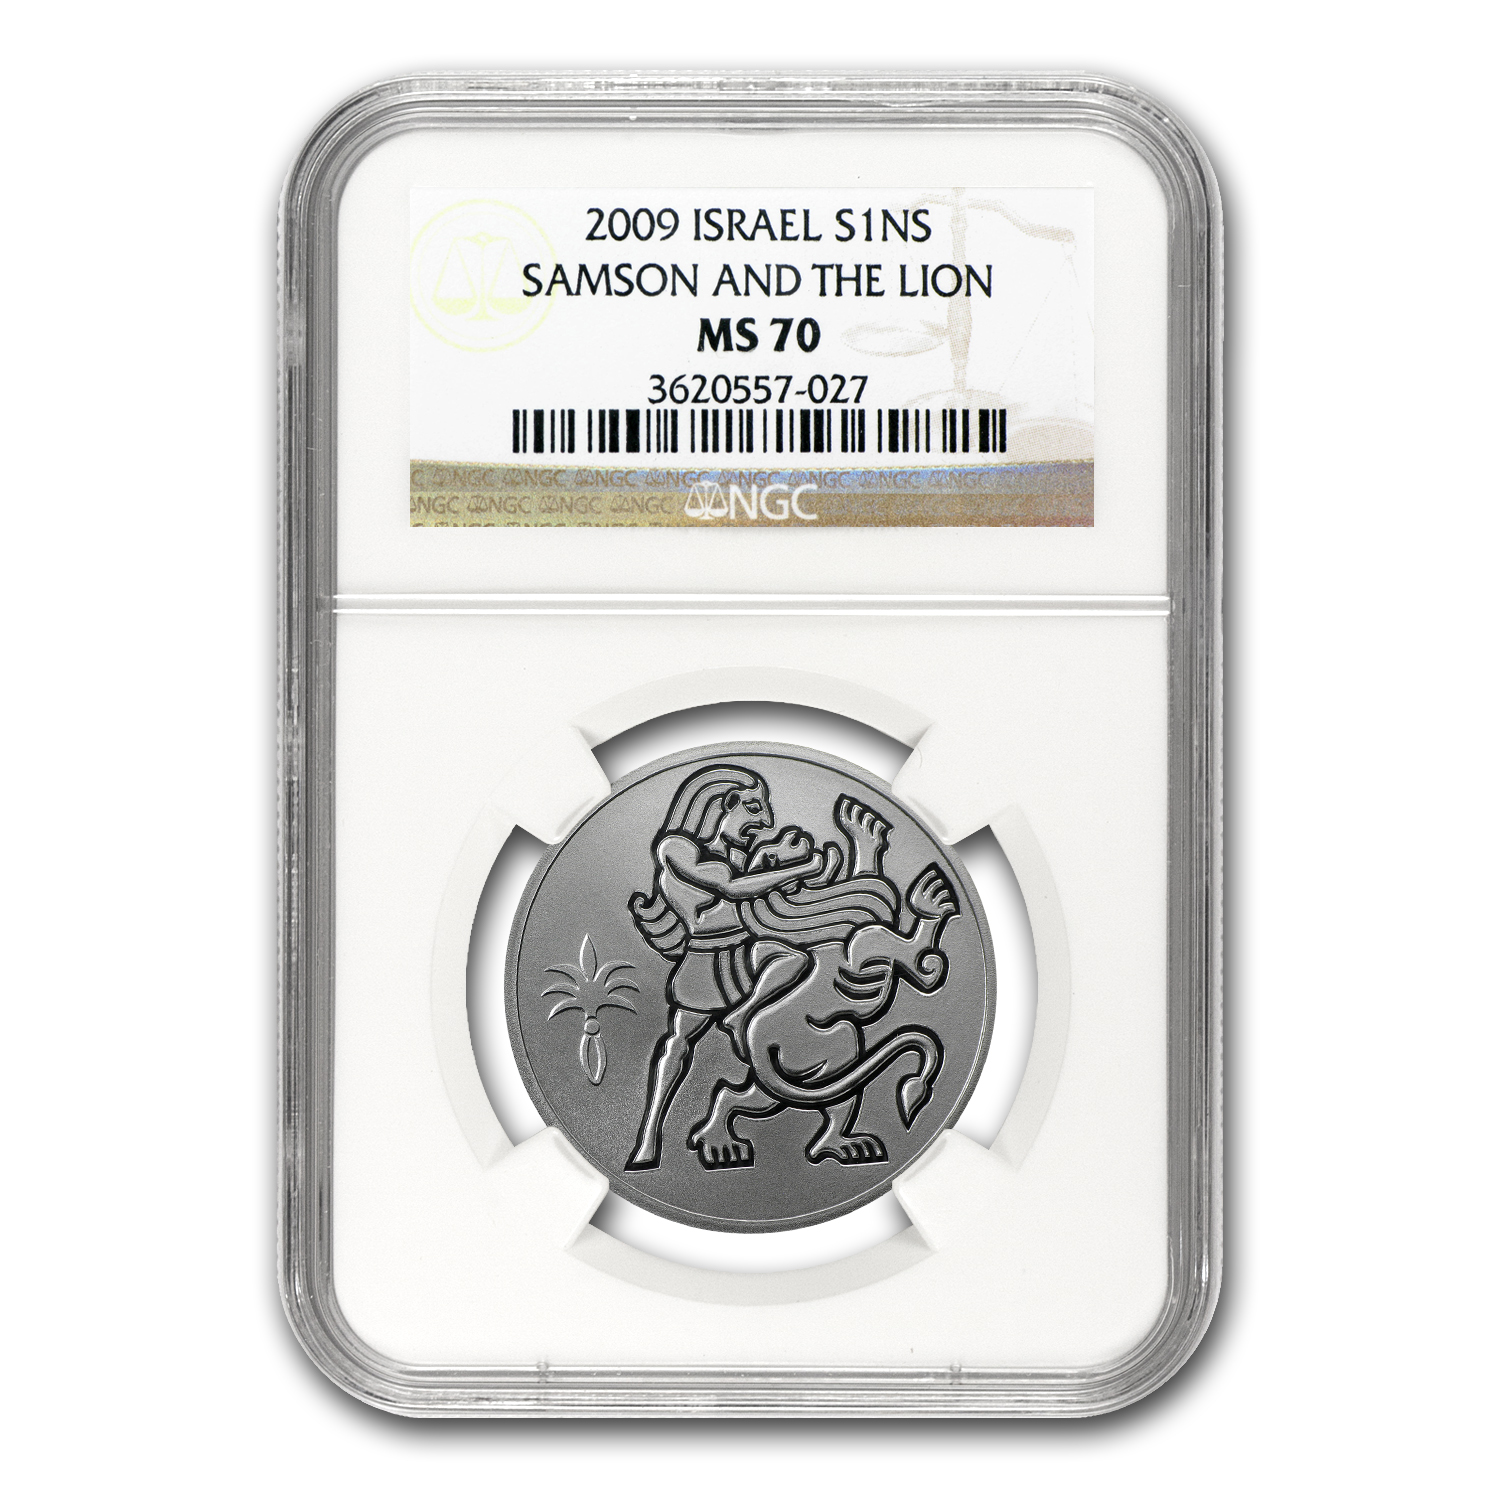 2009 Israel Silver 1 NIS Samson and the Lion MS-70 NGC